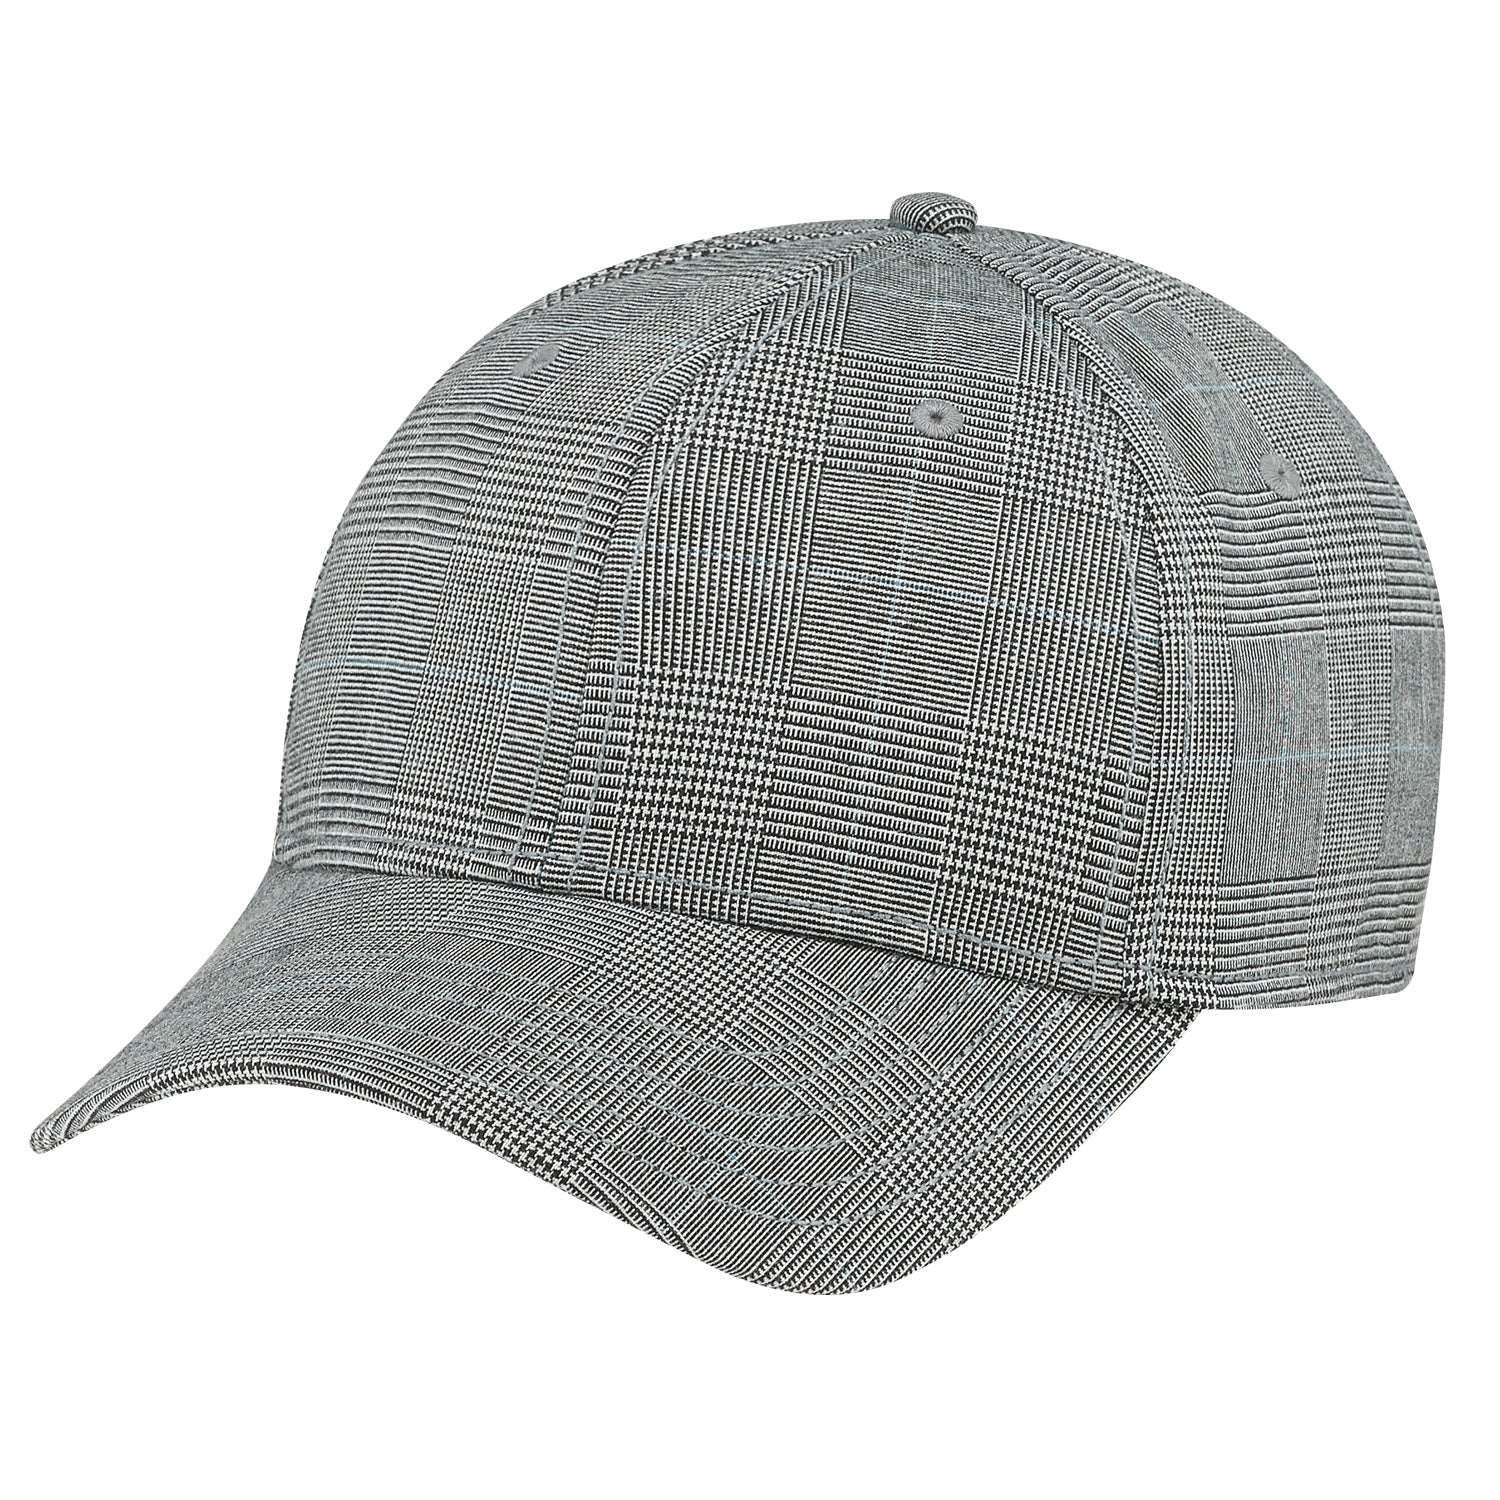 CUSTOM POLYESTER PLAID & SPANDEX HAT